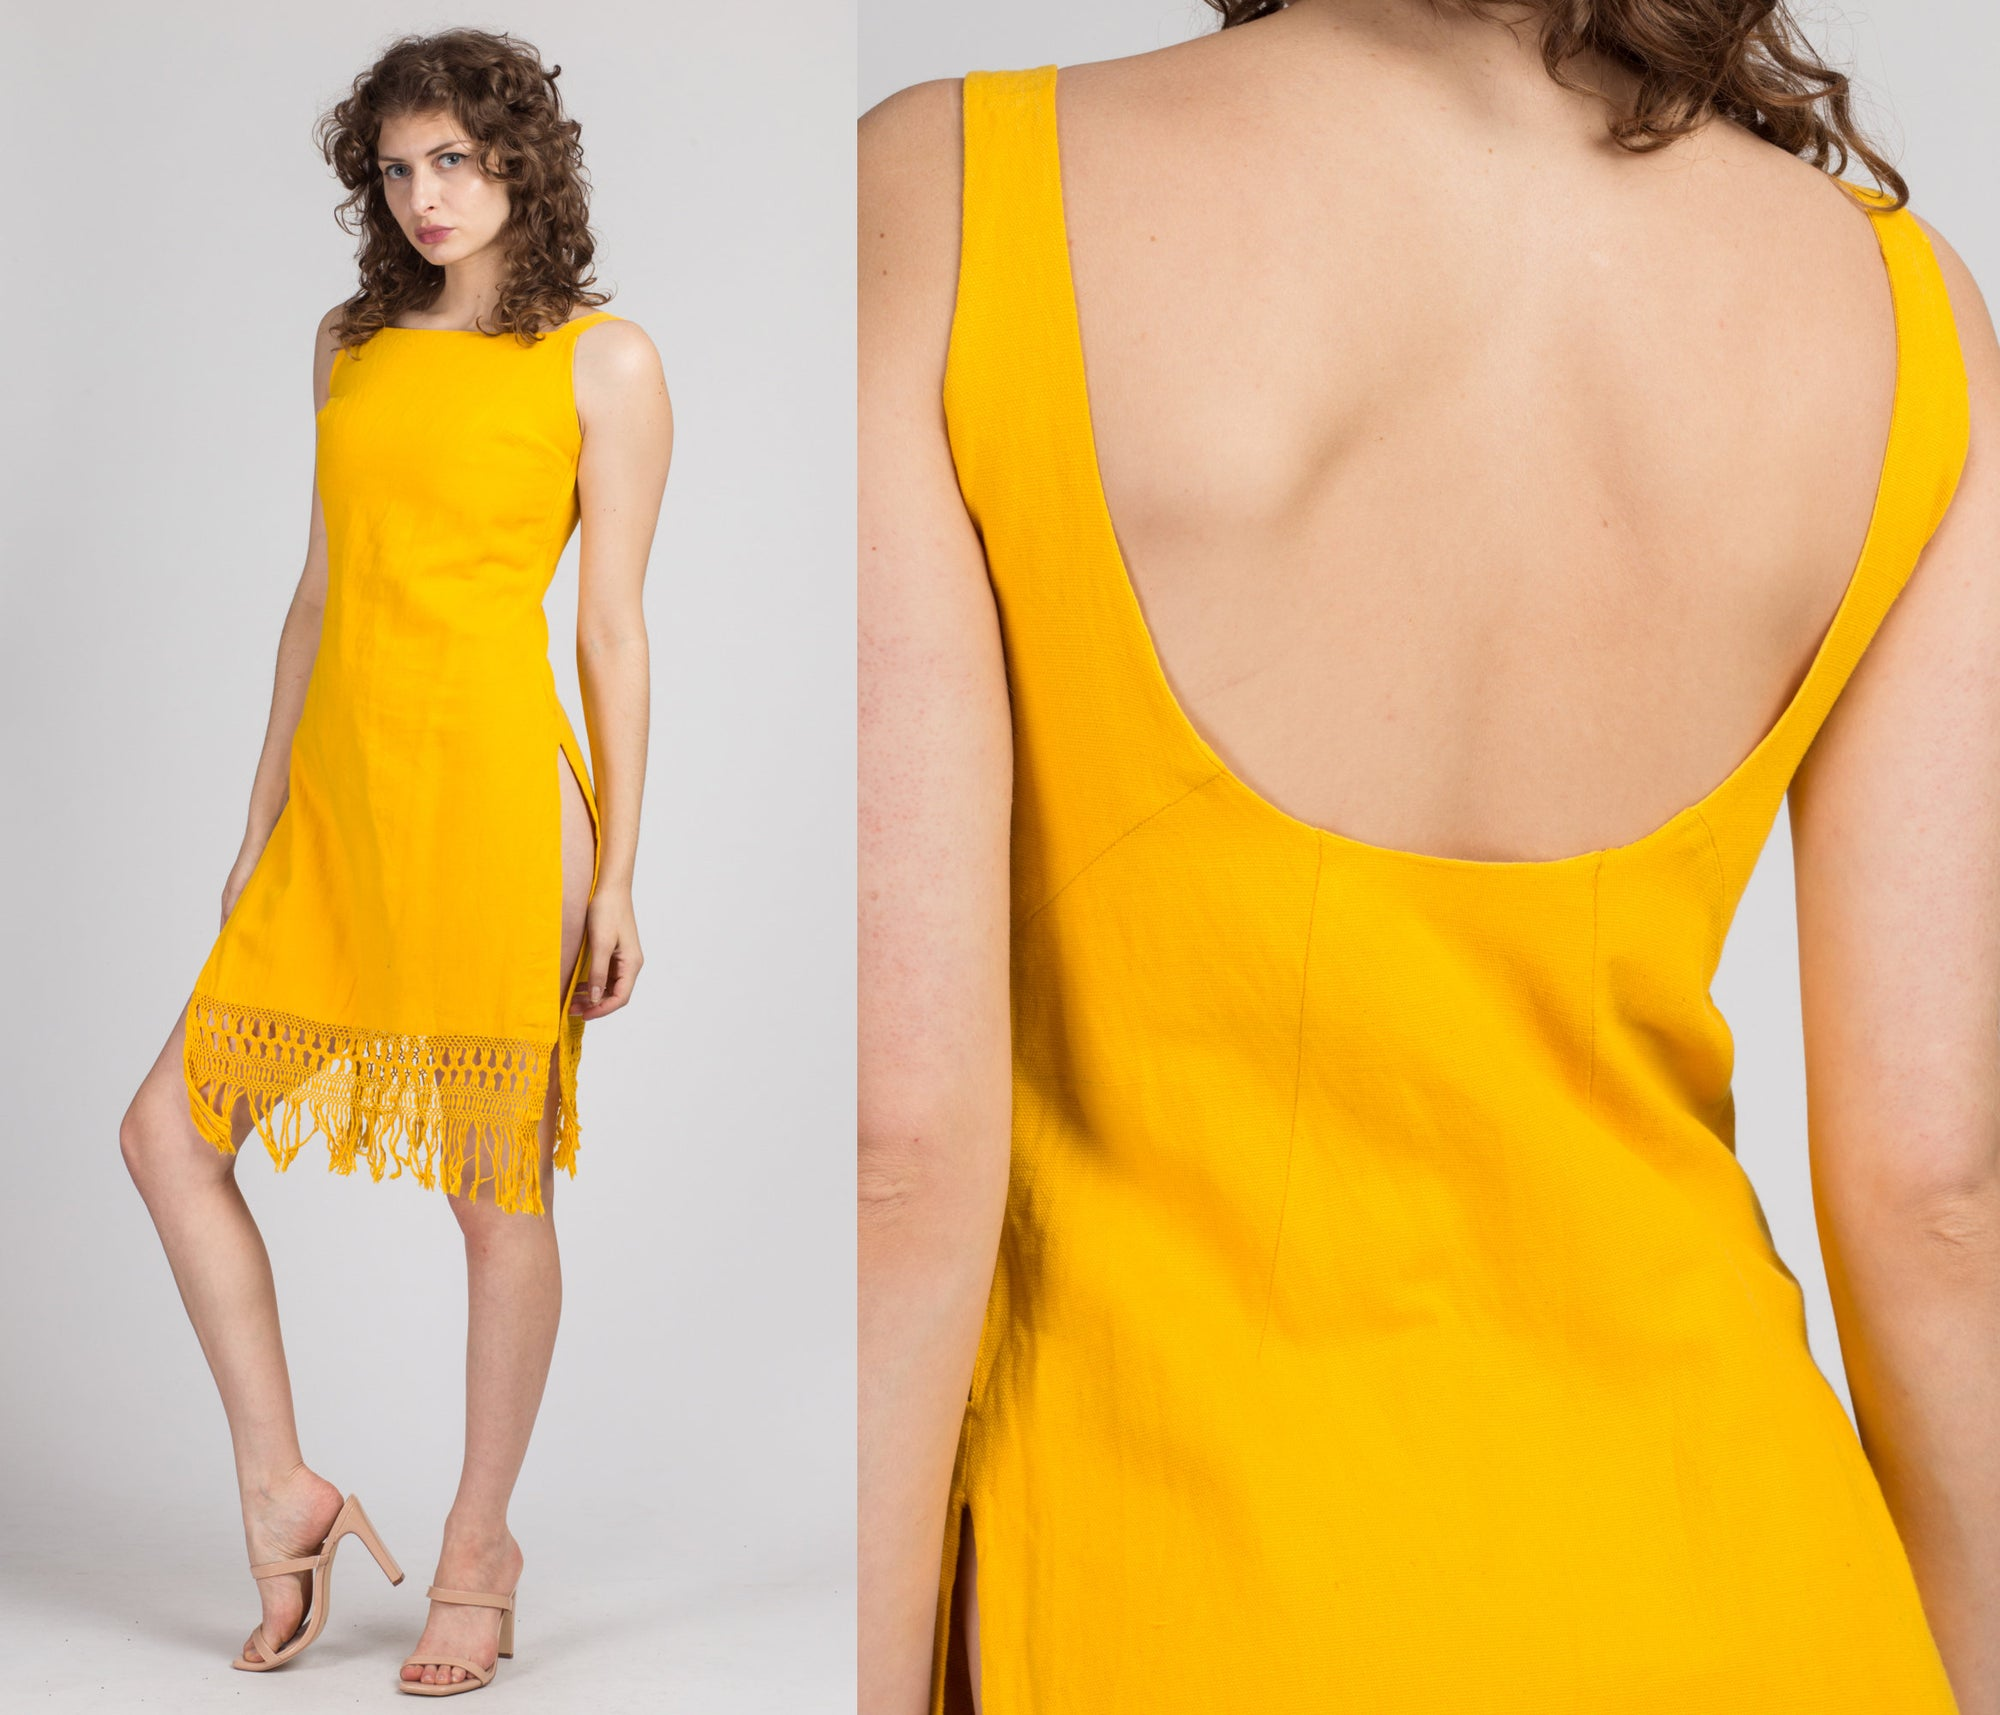 60s Yellow High Slit Fringe Mini Dress - Small